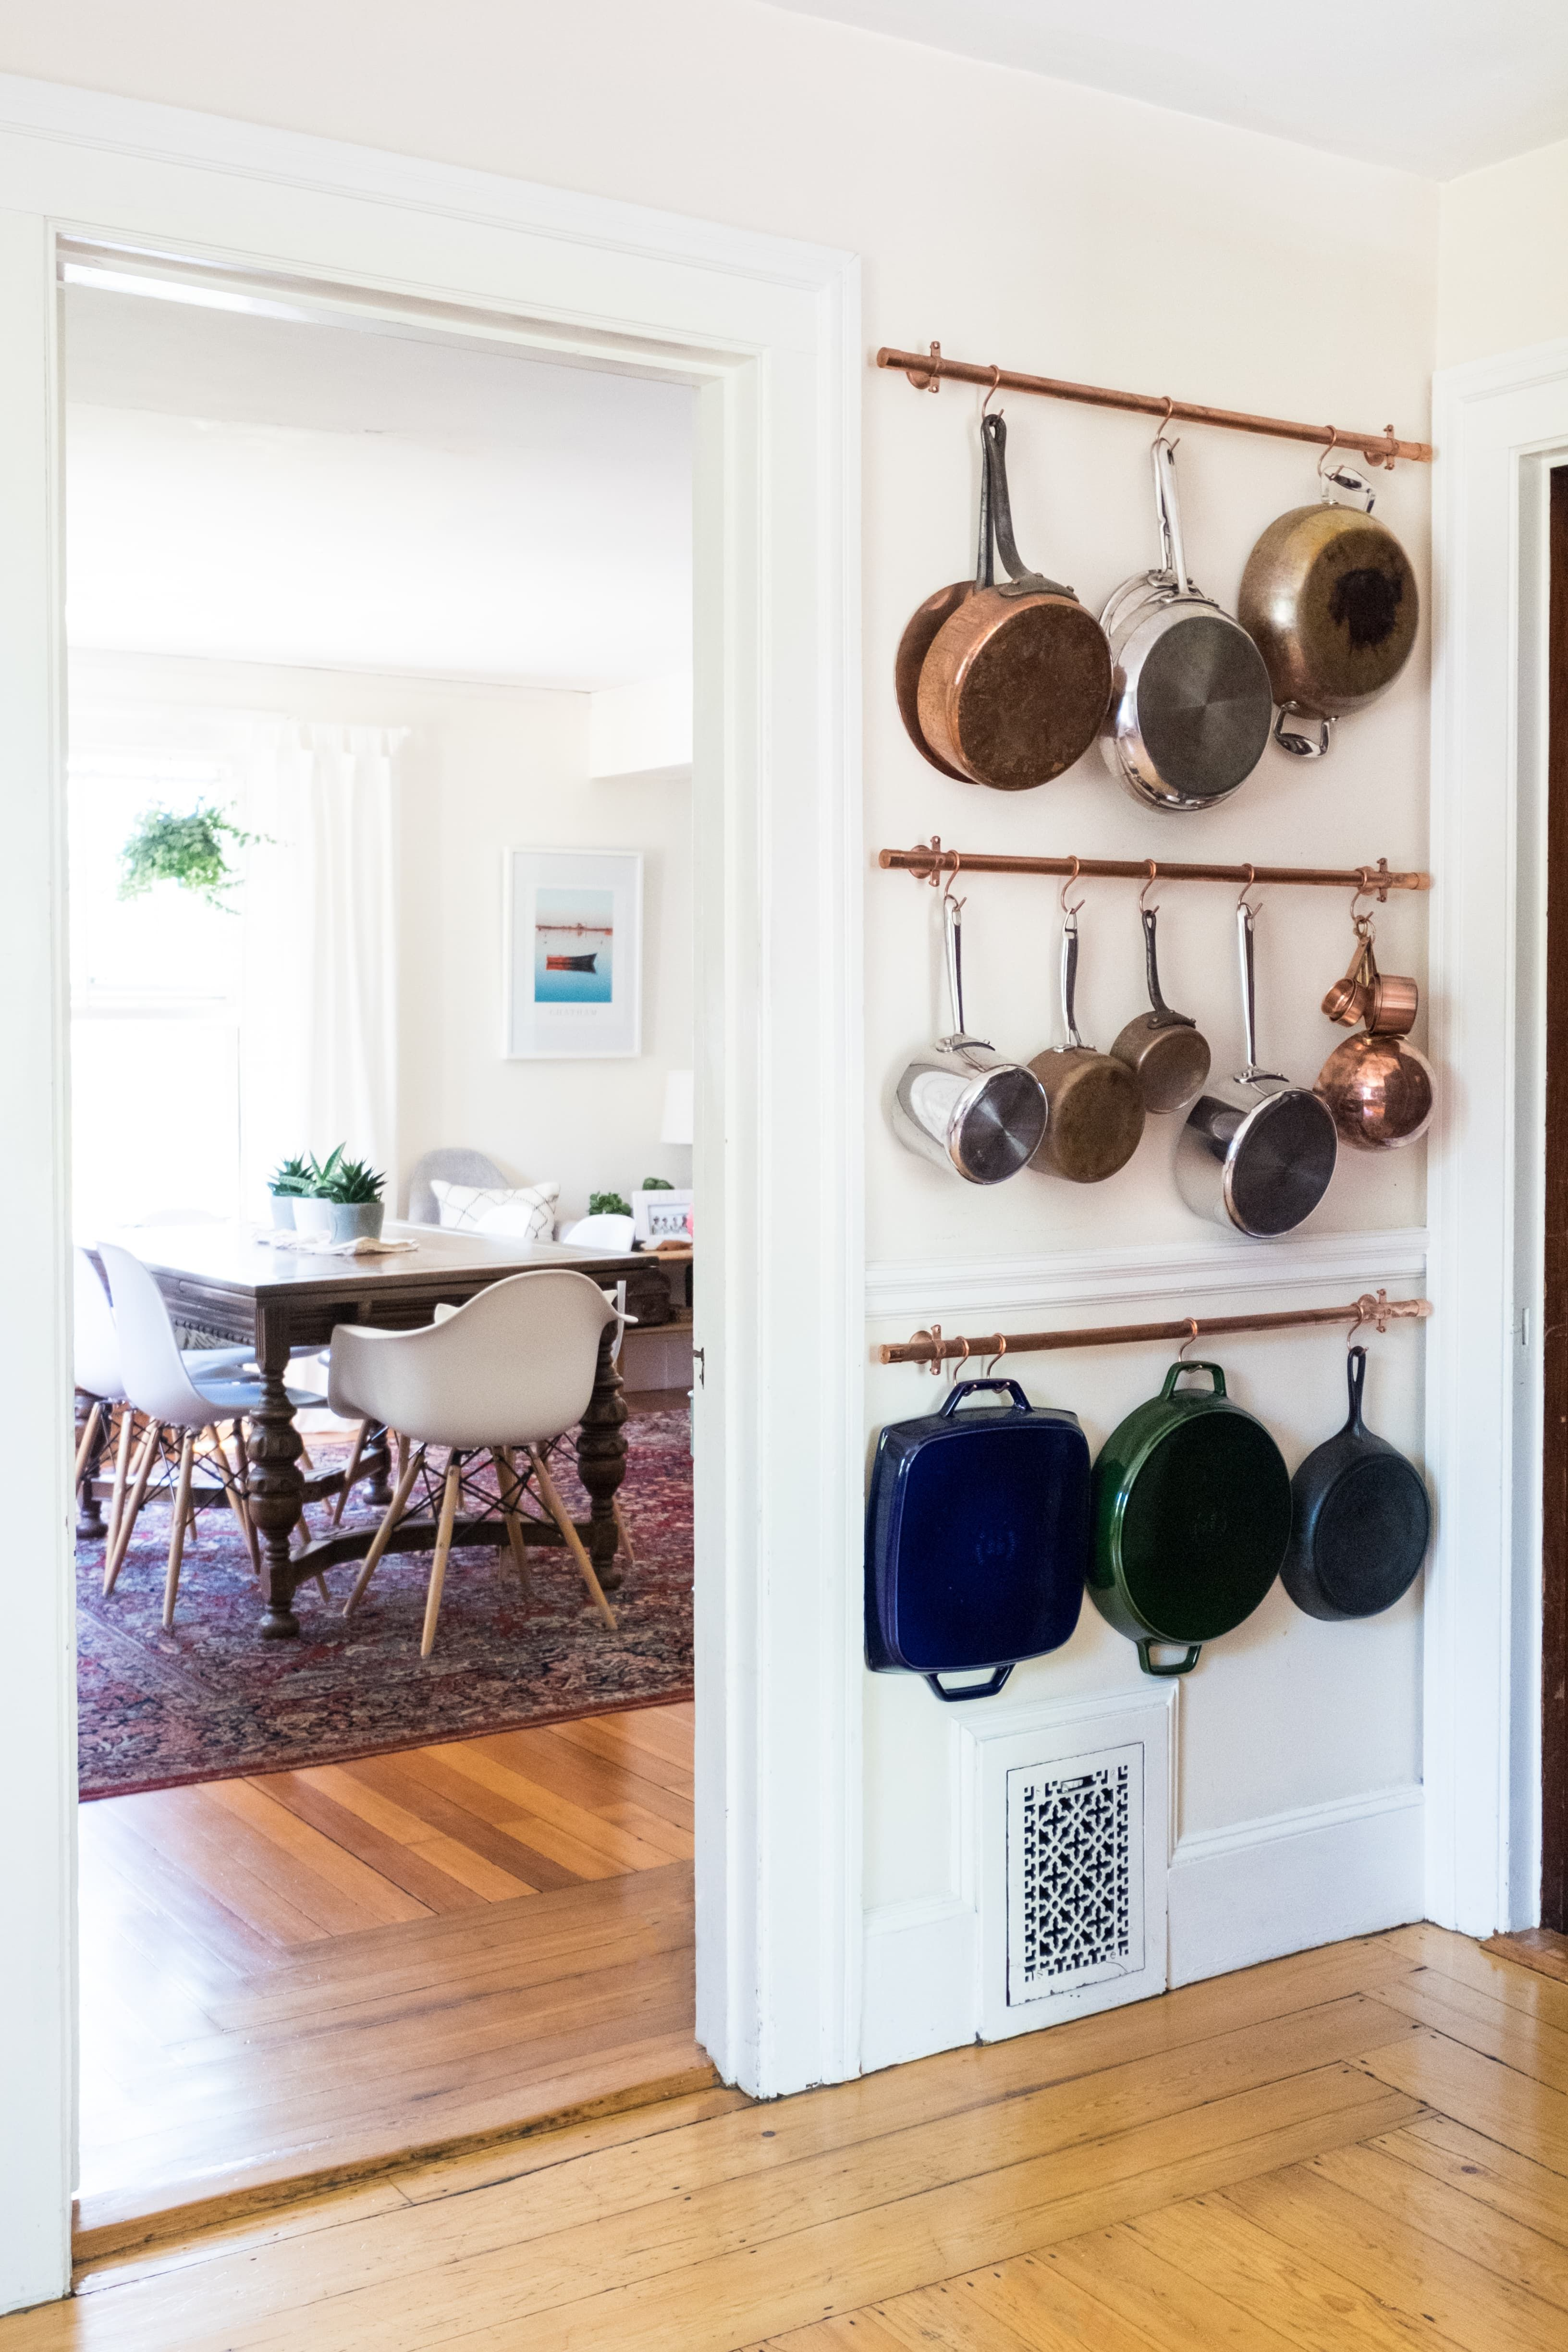 How To Arrange Pots And Pans In Kitchen Pendant Lights For Island House Tour A Cheerful Colorful Rental Massachusetts